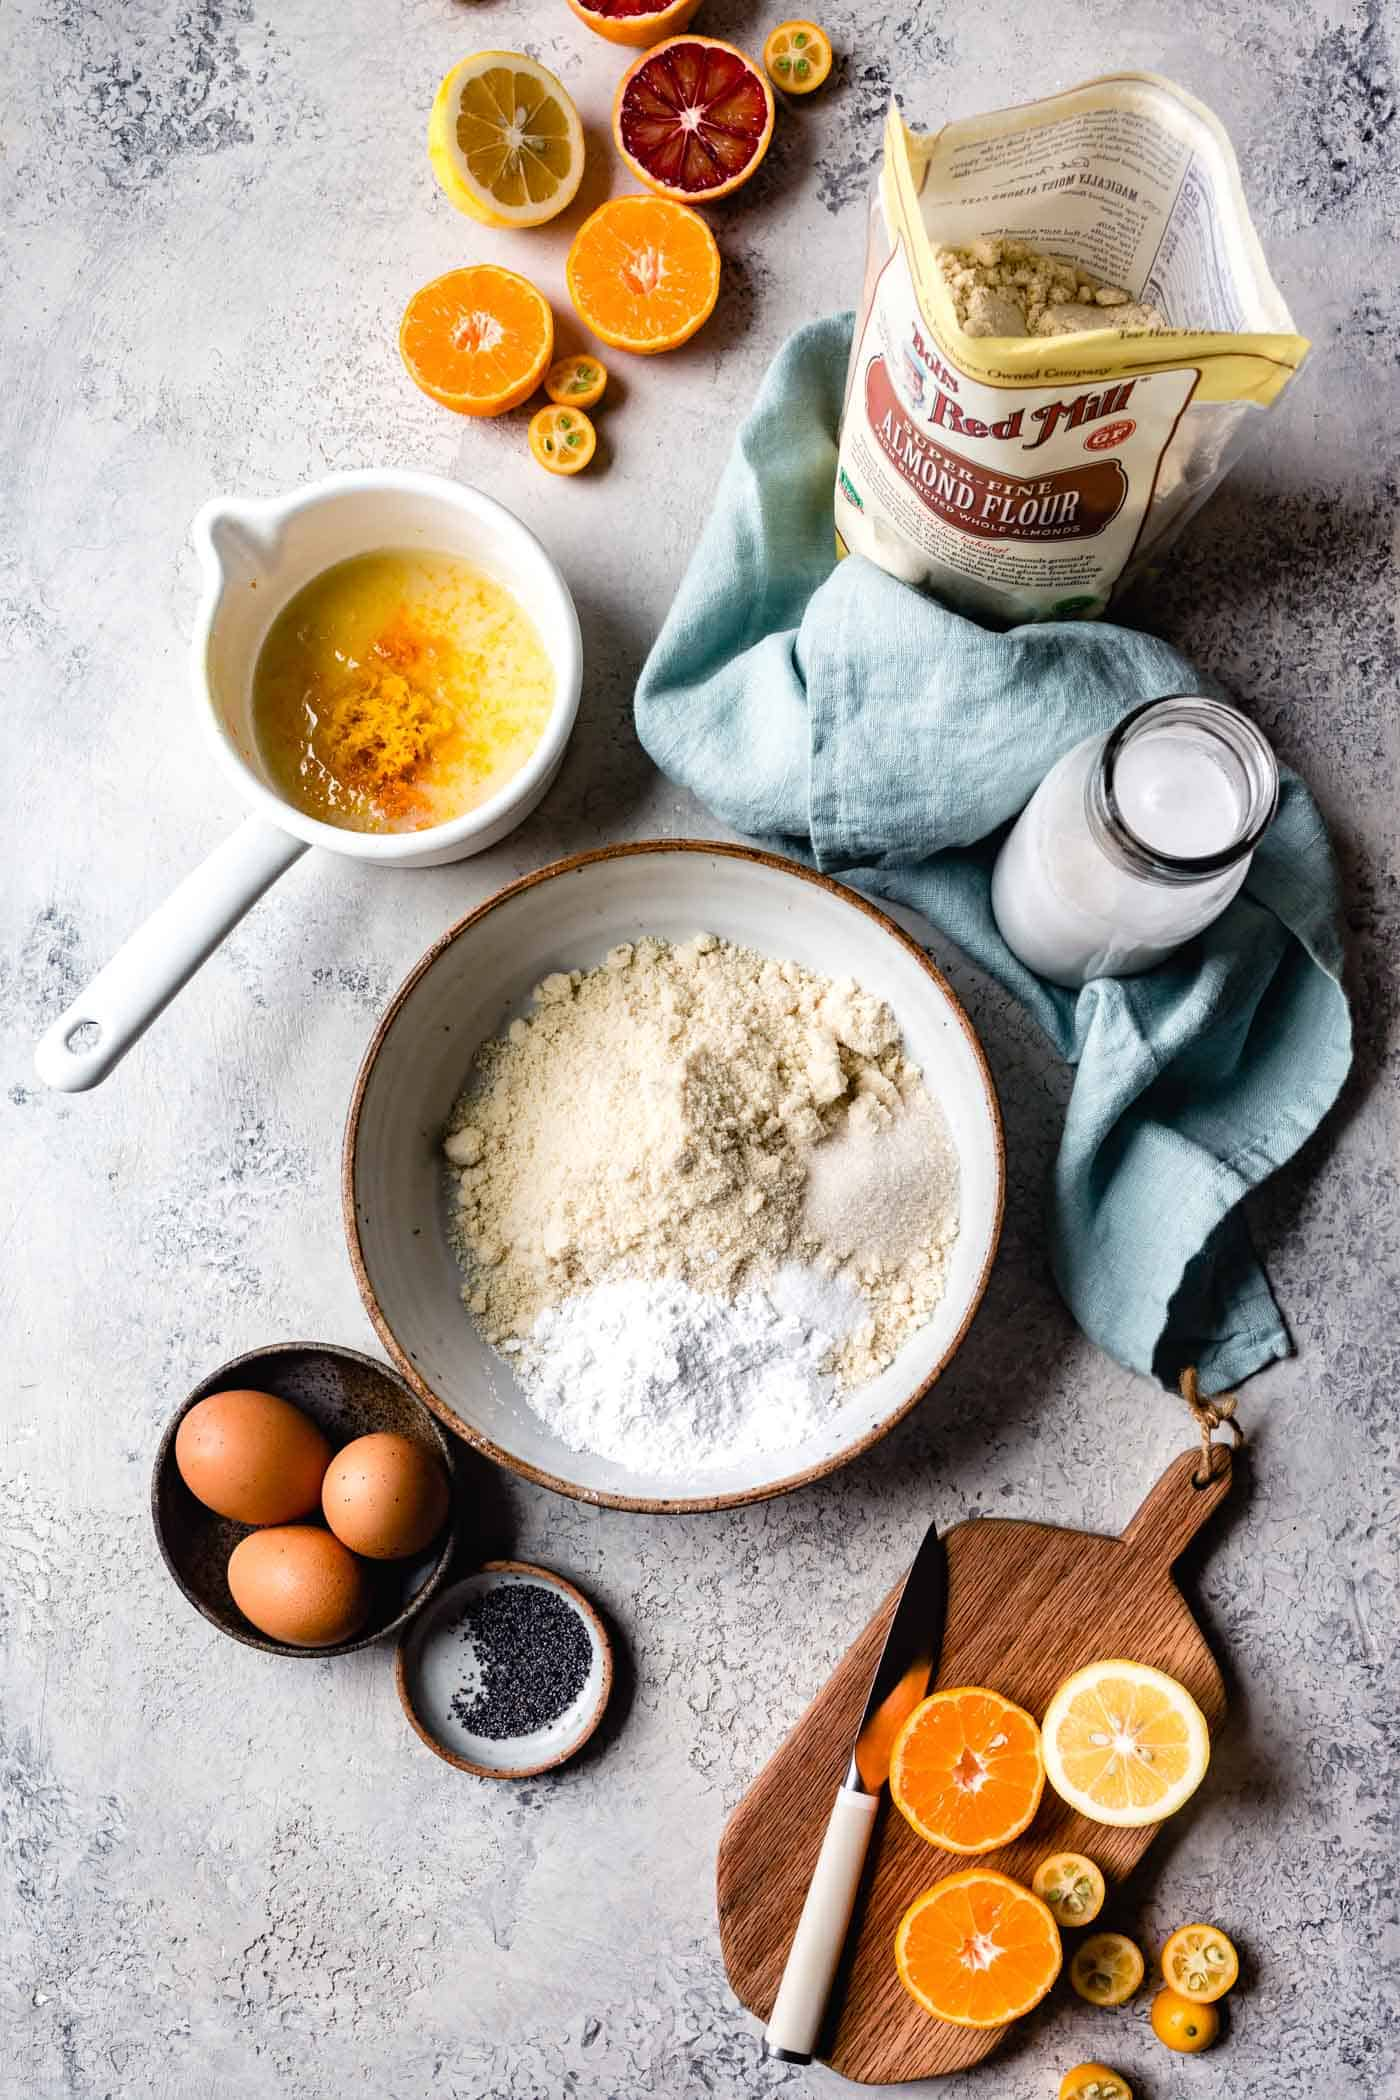 Ingredients for easy almond flour pancake recipe